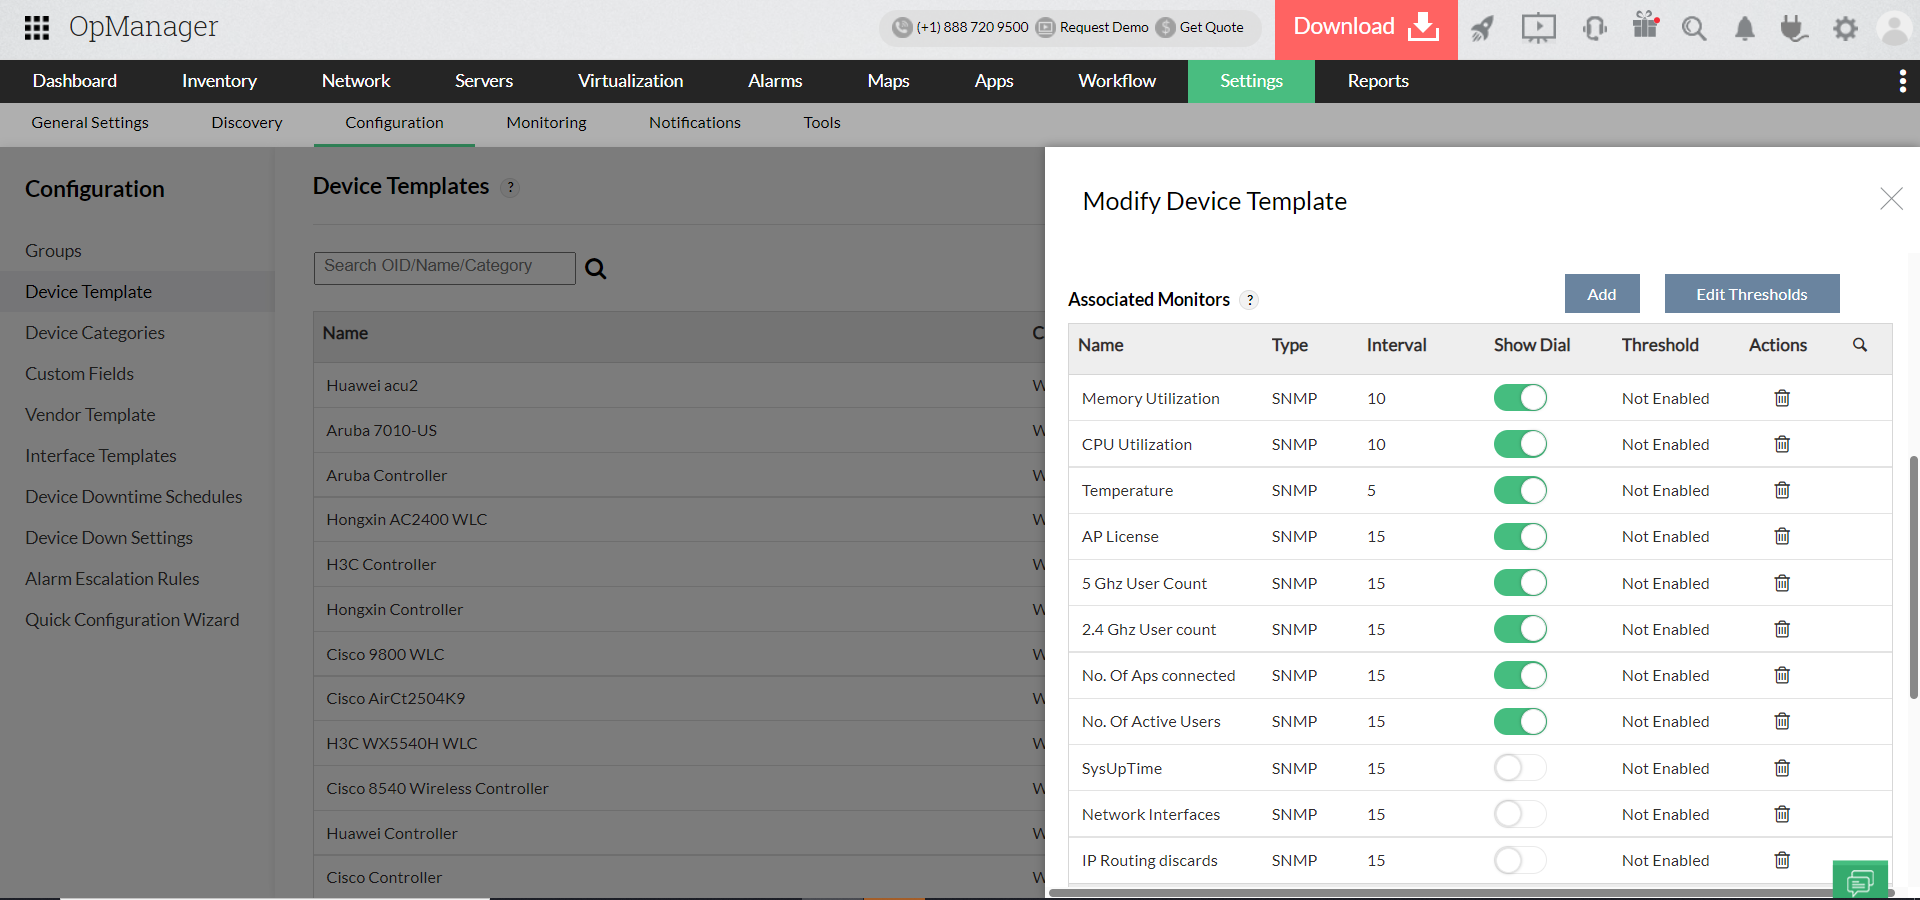 Wi-Fi Monitoring Software - ManageEngine OpManager